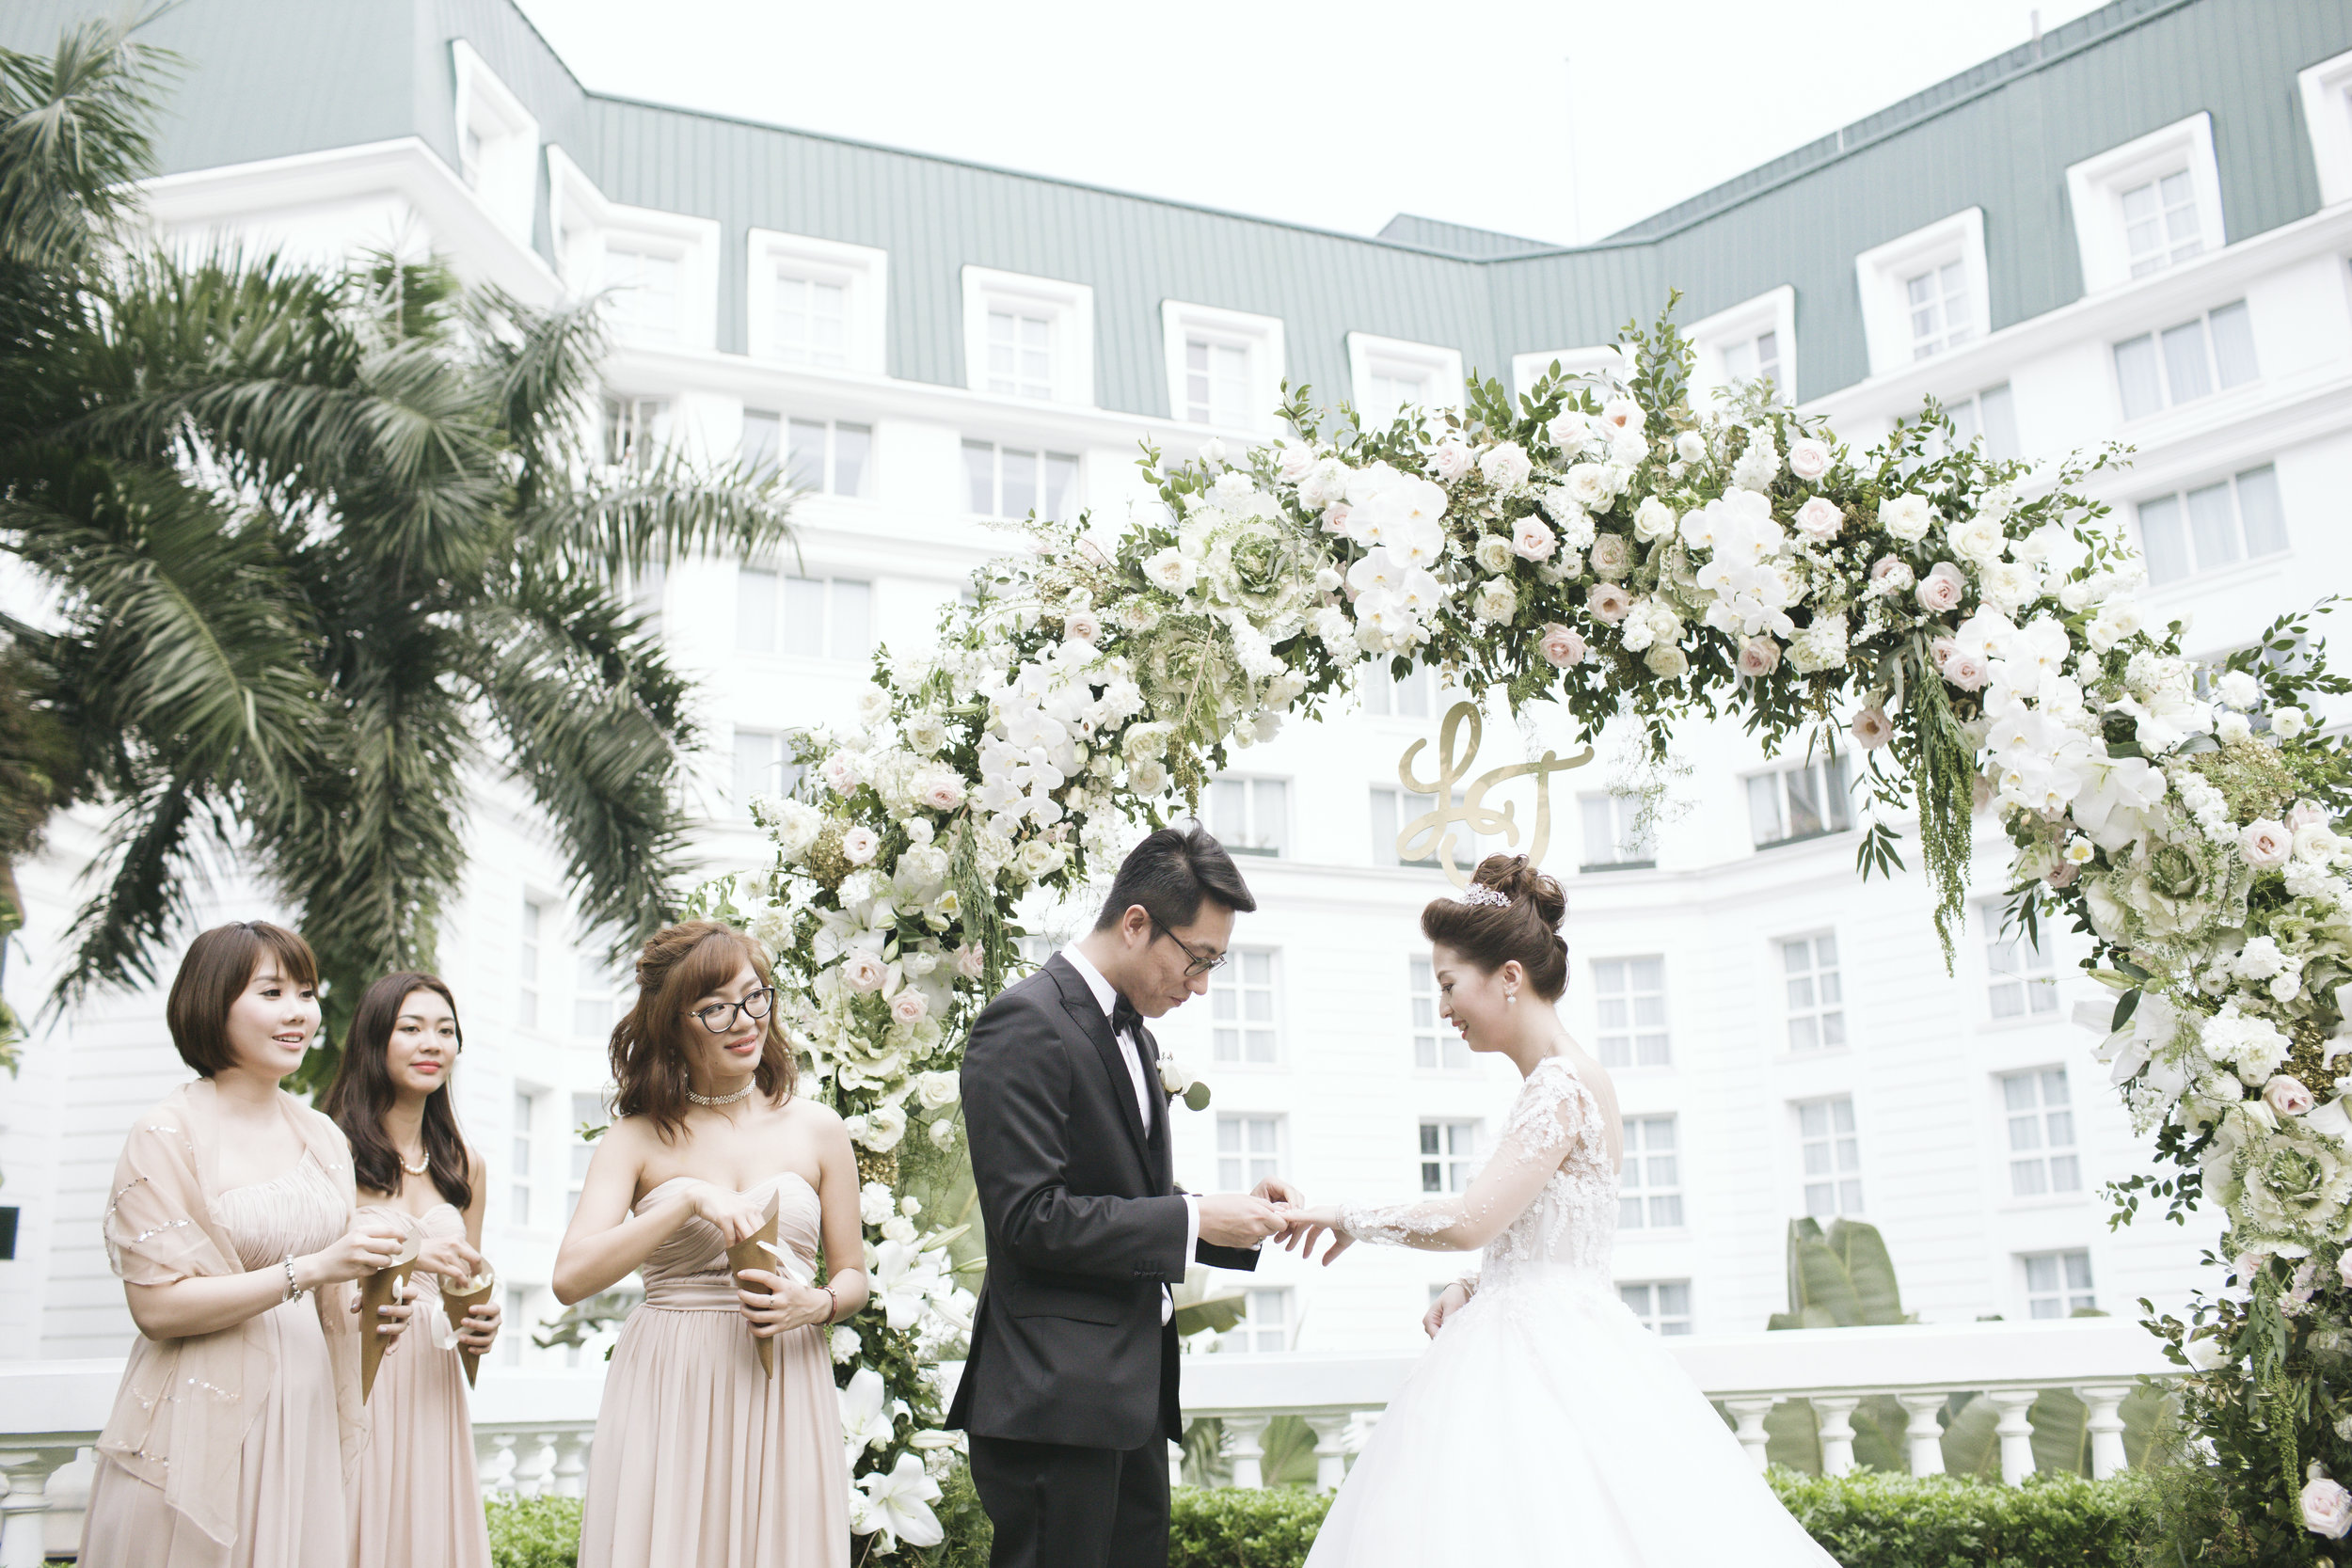 THE INDOCHINE SPRING - Ly & Trung 's wedding